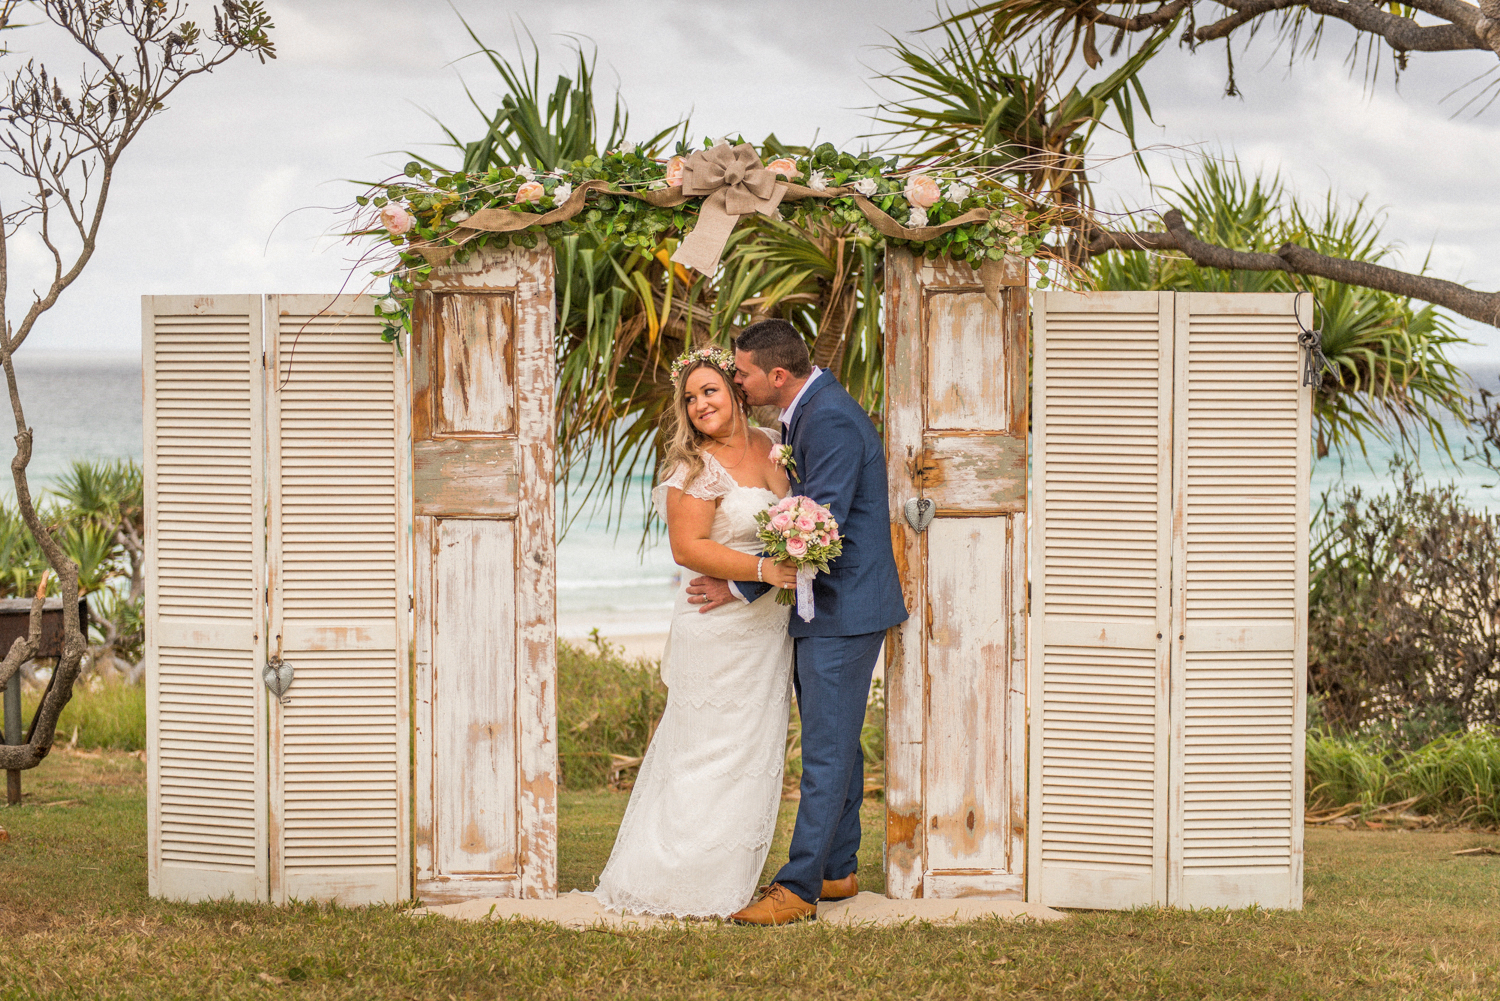 wedding ceremony styling with old doors